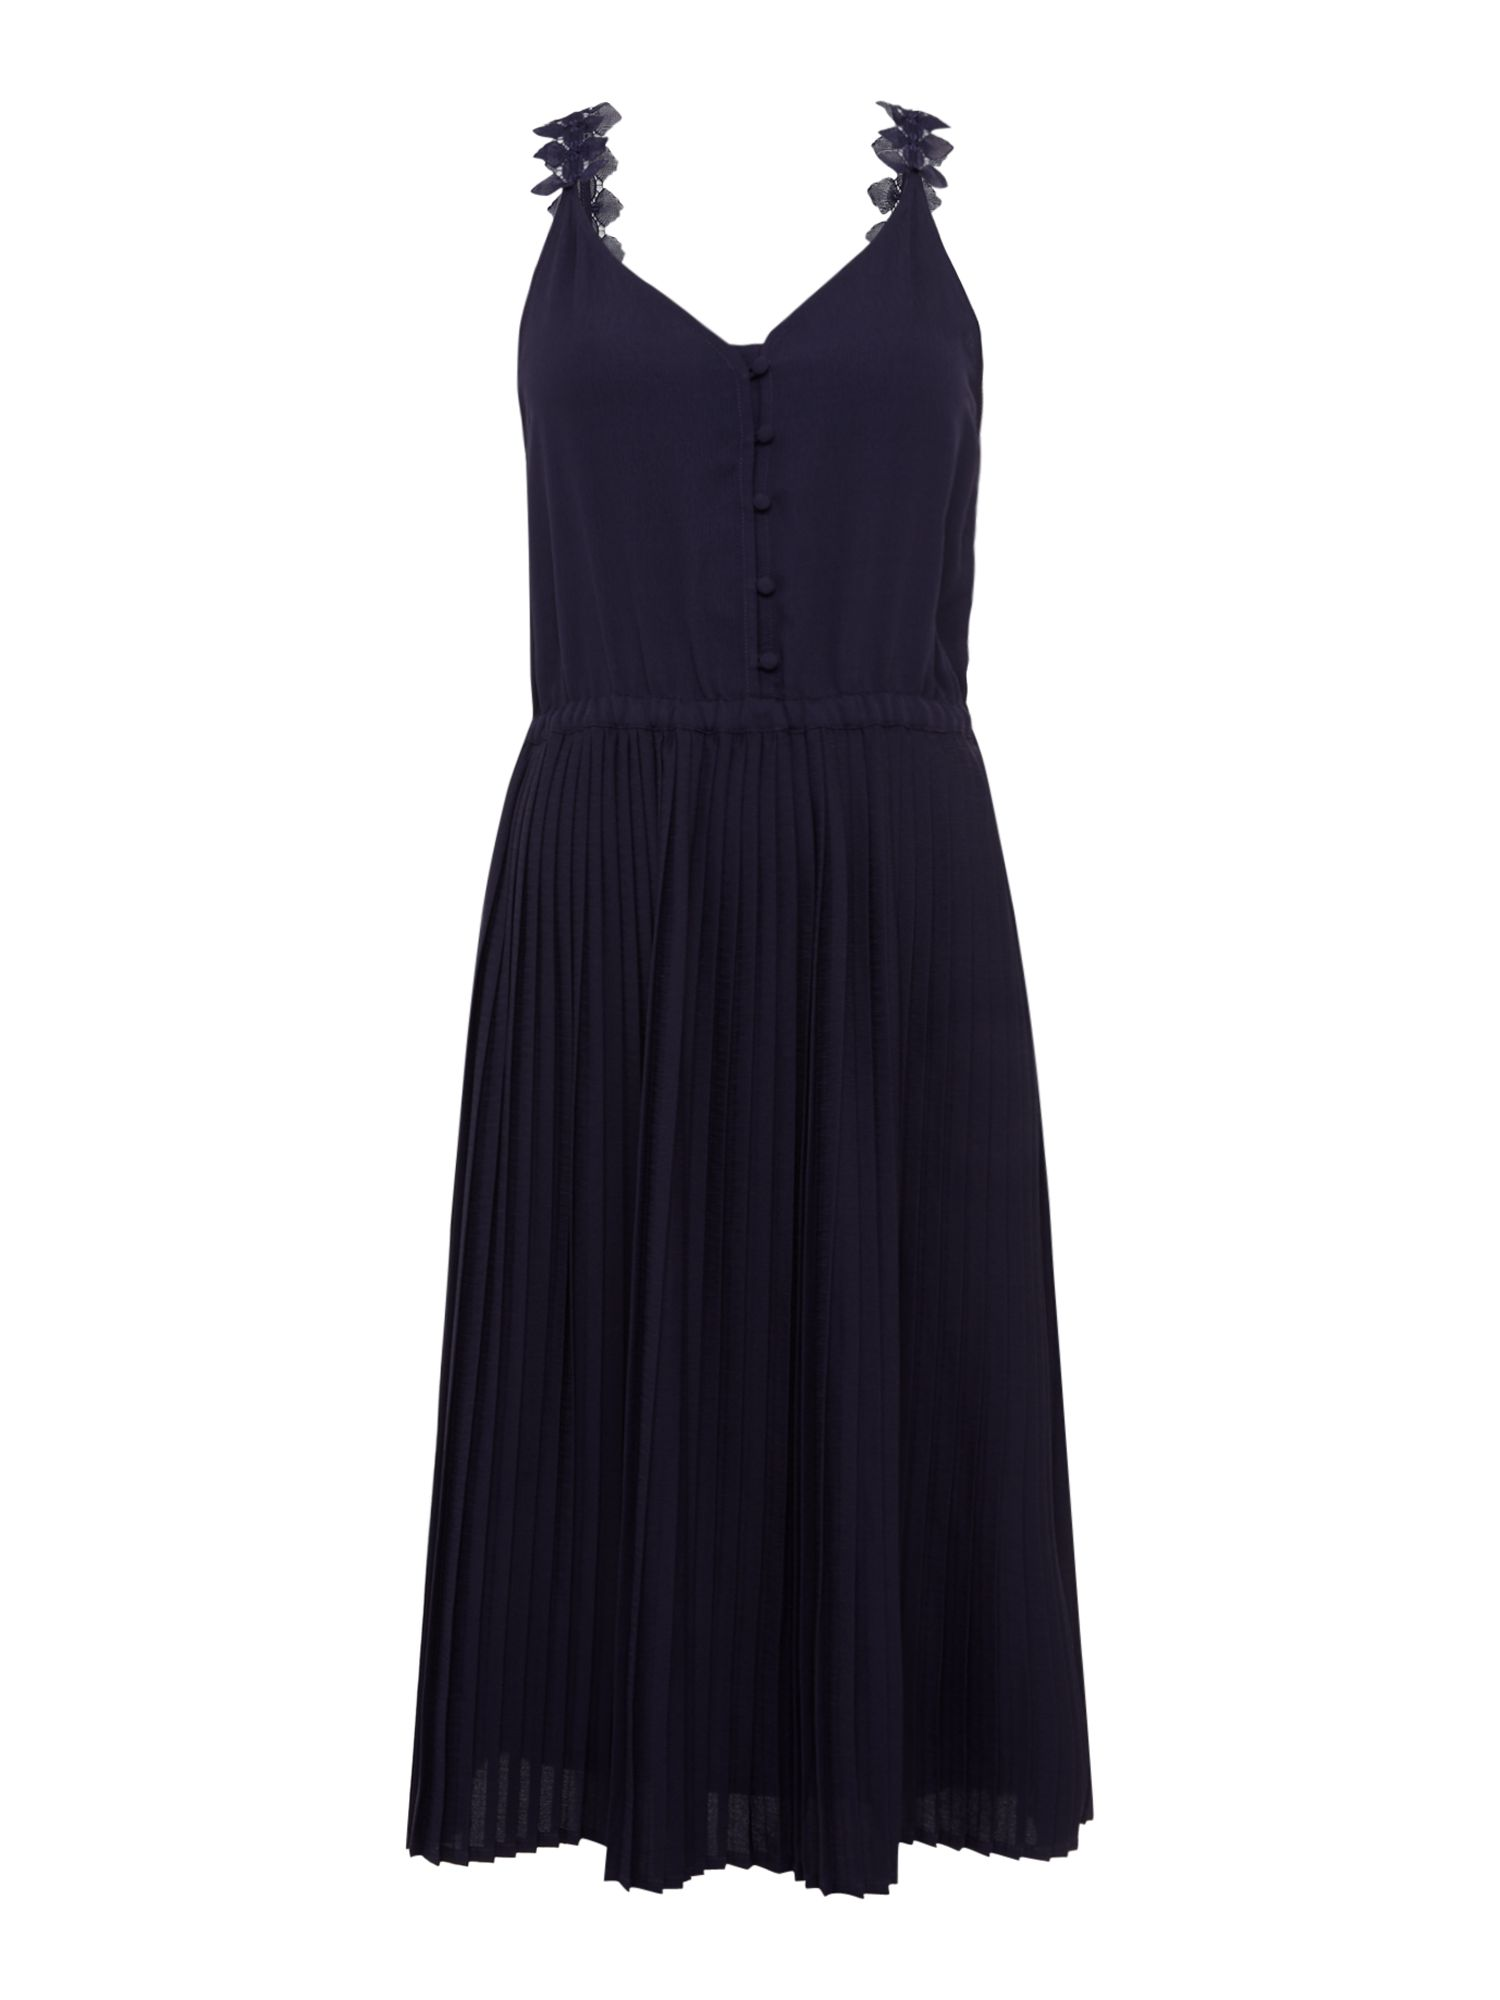 Sessun Dinah dress with pleated skirt and emb, Indigo